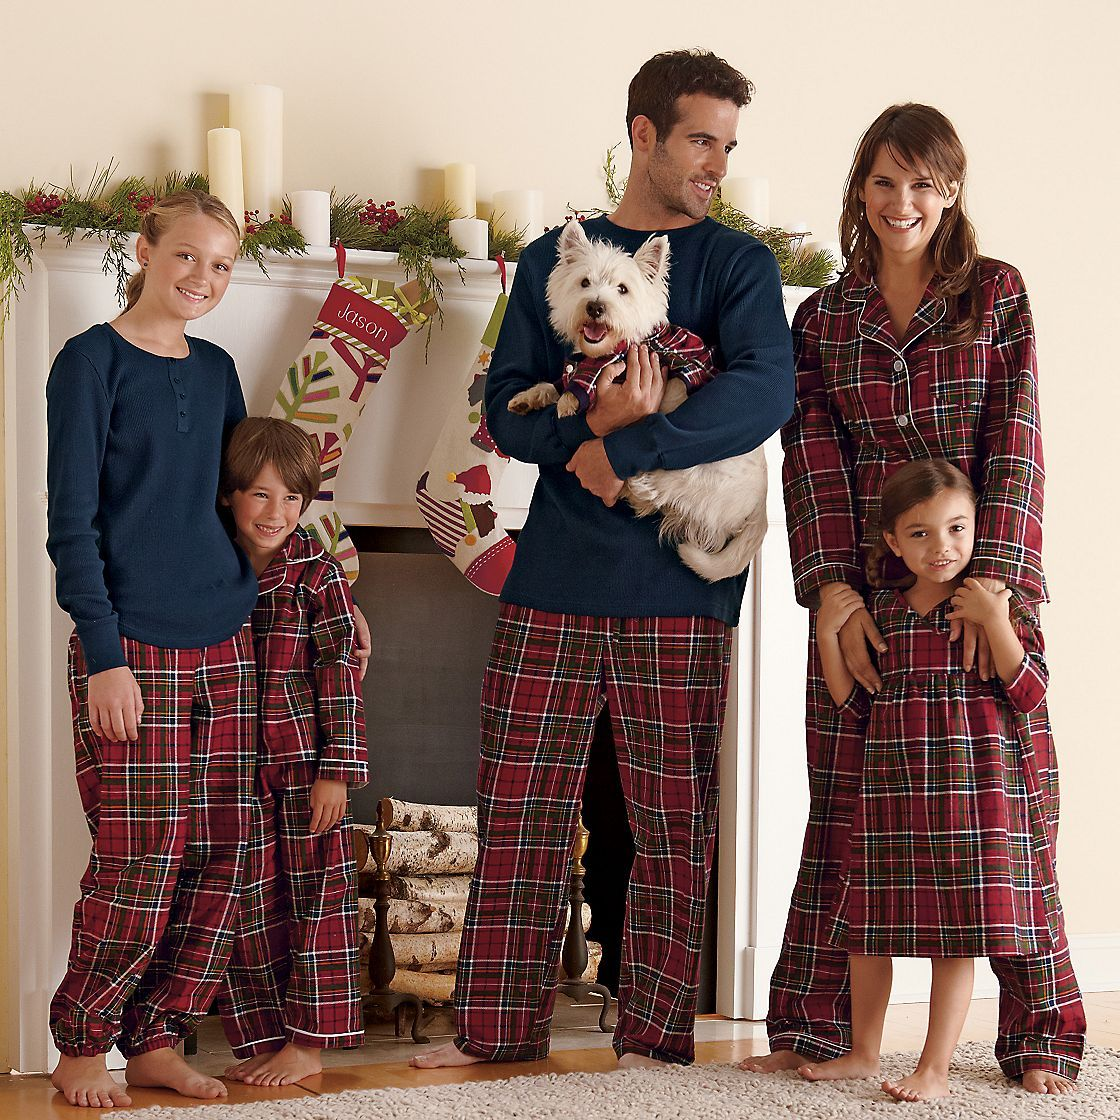 Family Christmas Pajamas Including Dog.We Always Love To Wear Coordinating Pjs On Christmas Morning